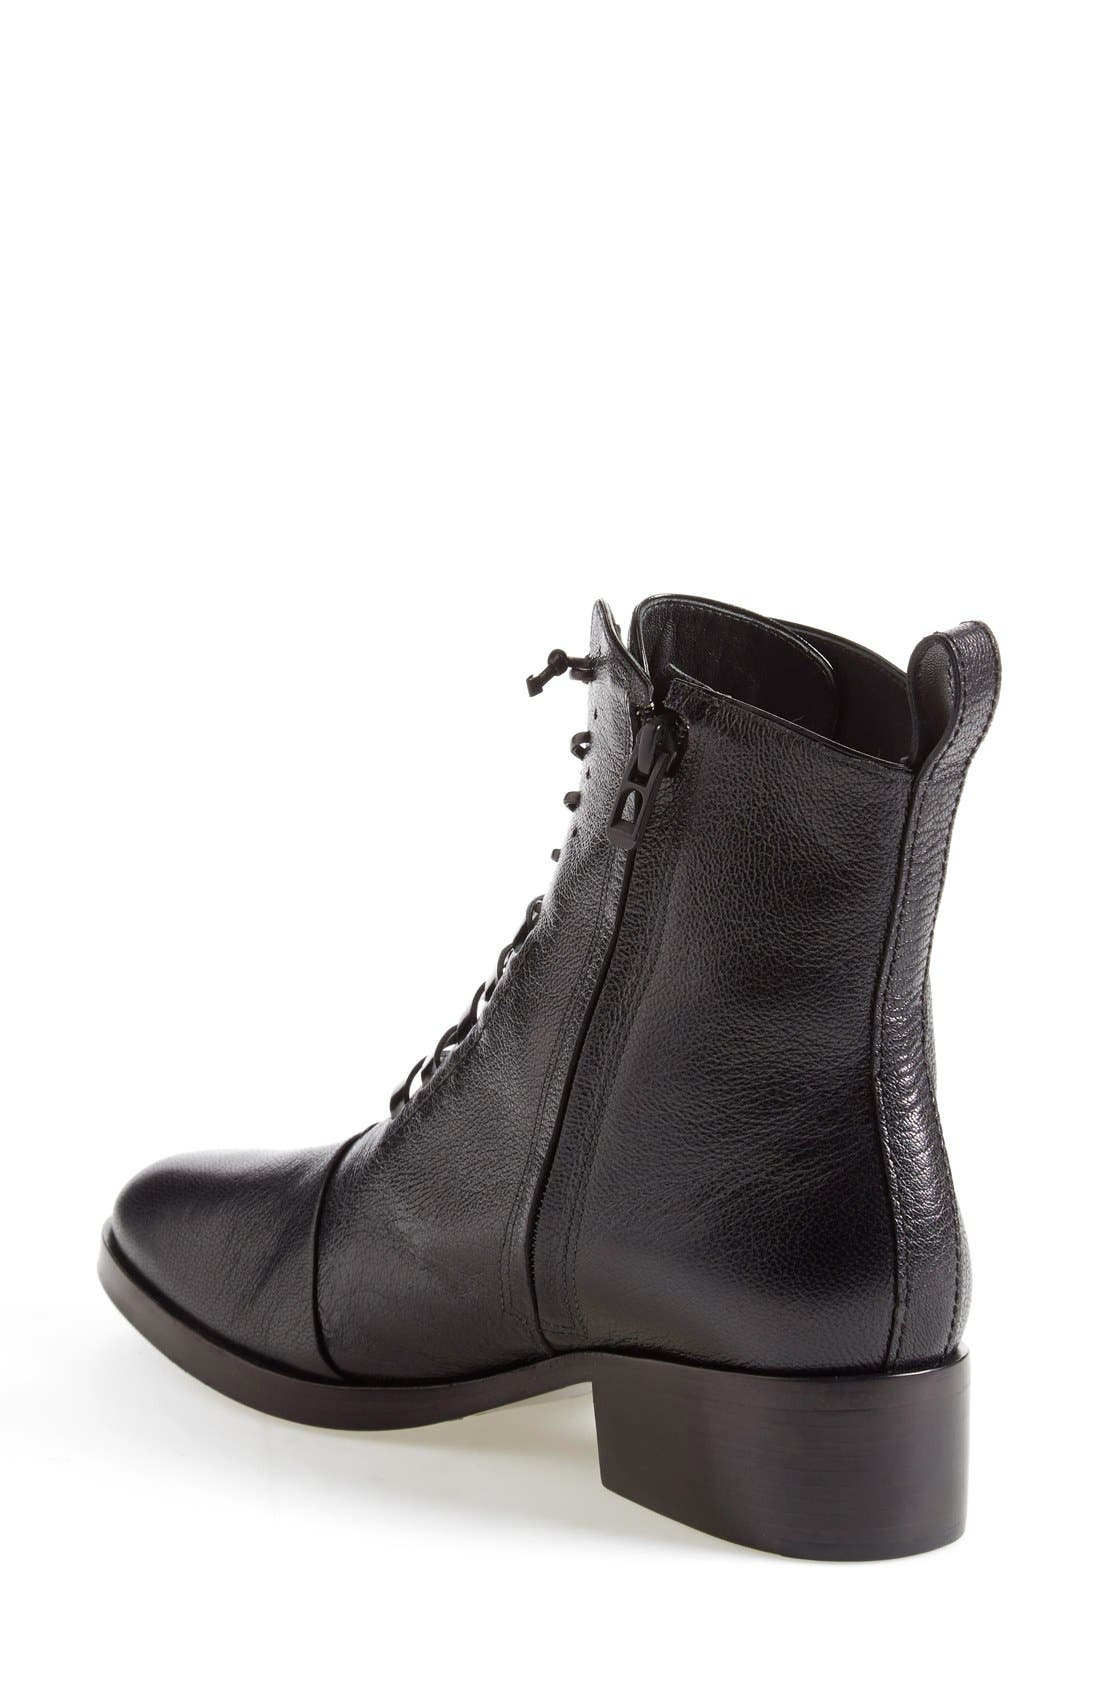 Alternate Image 2  - 3.1 Phillip Lim 'Alexa' Lace-Up Ankle Boot (Women)